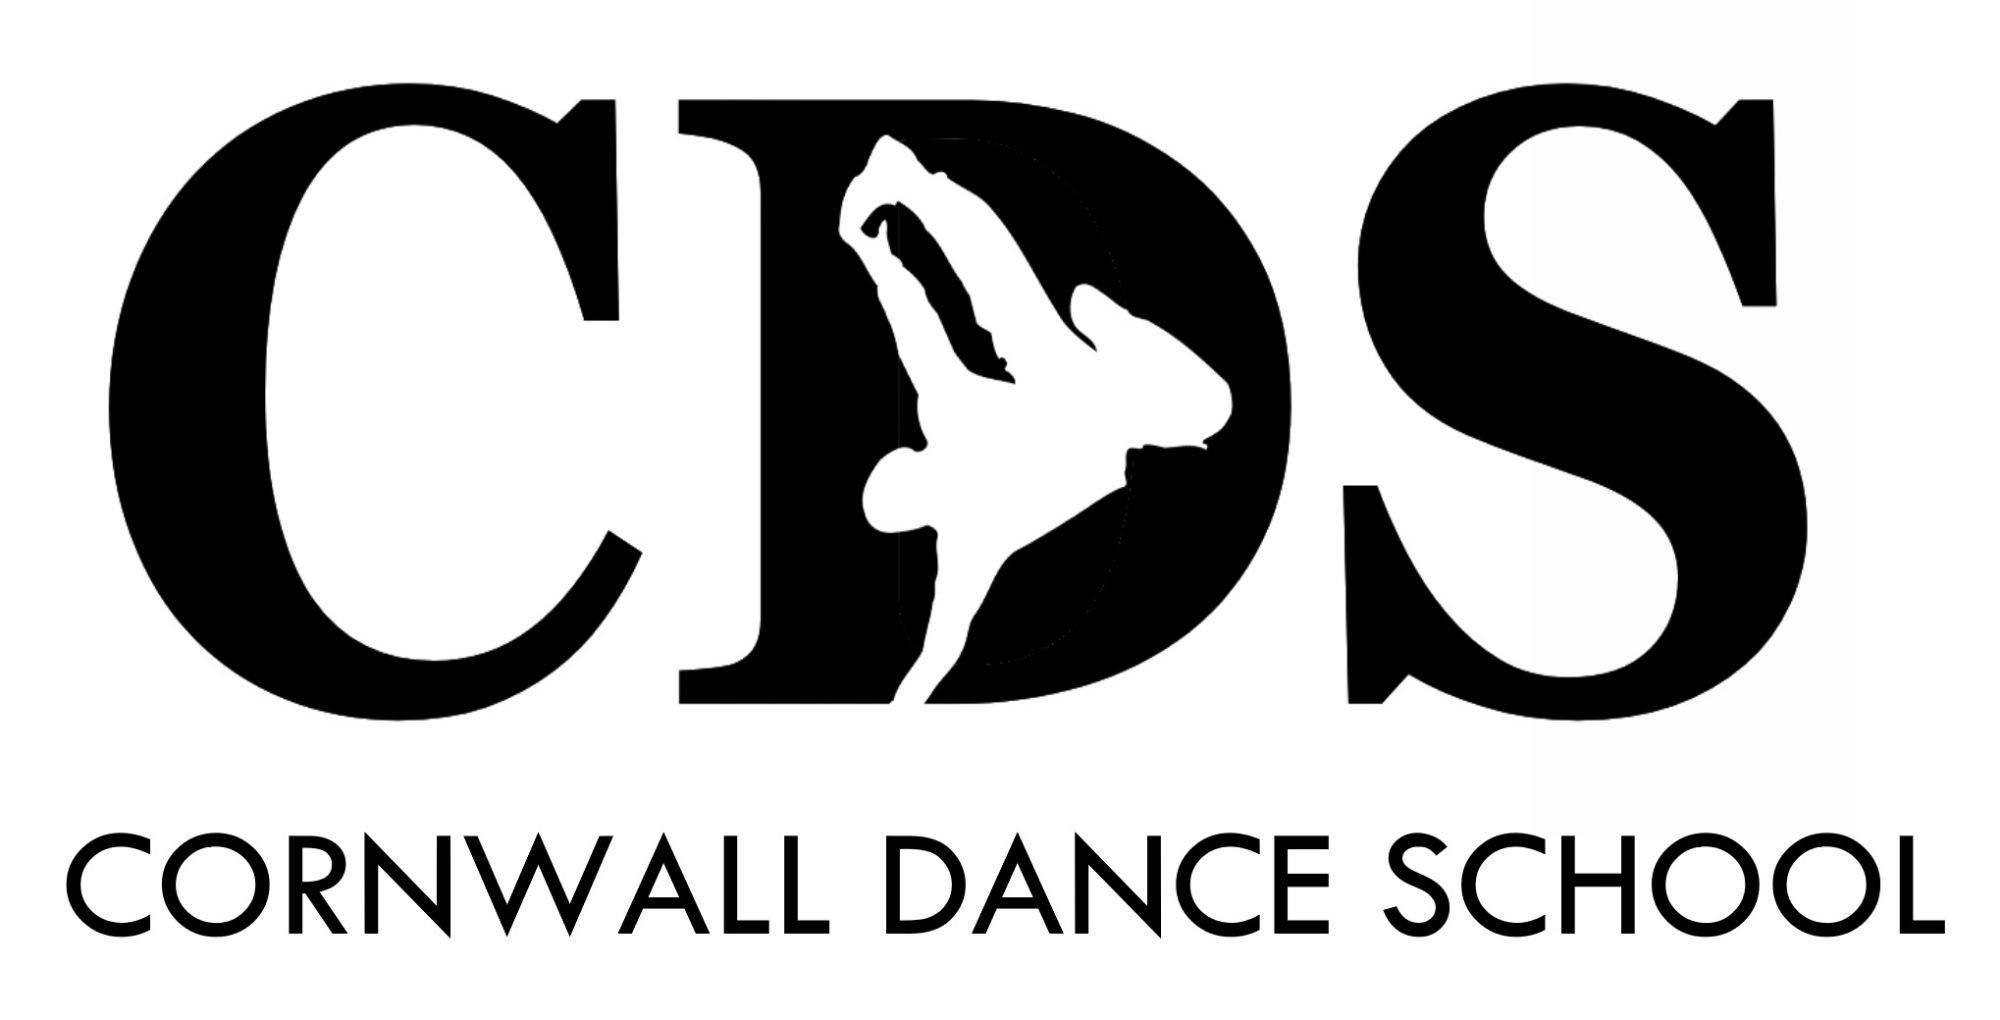 Cornwall Dance School provides Dance, Musical Theatre, Drama, Acting and Singing Tuition for students of all ages and abilities in Truro, Falmouth and Helston in Cornwall.